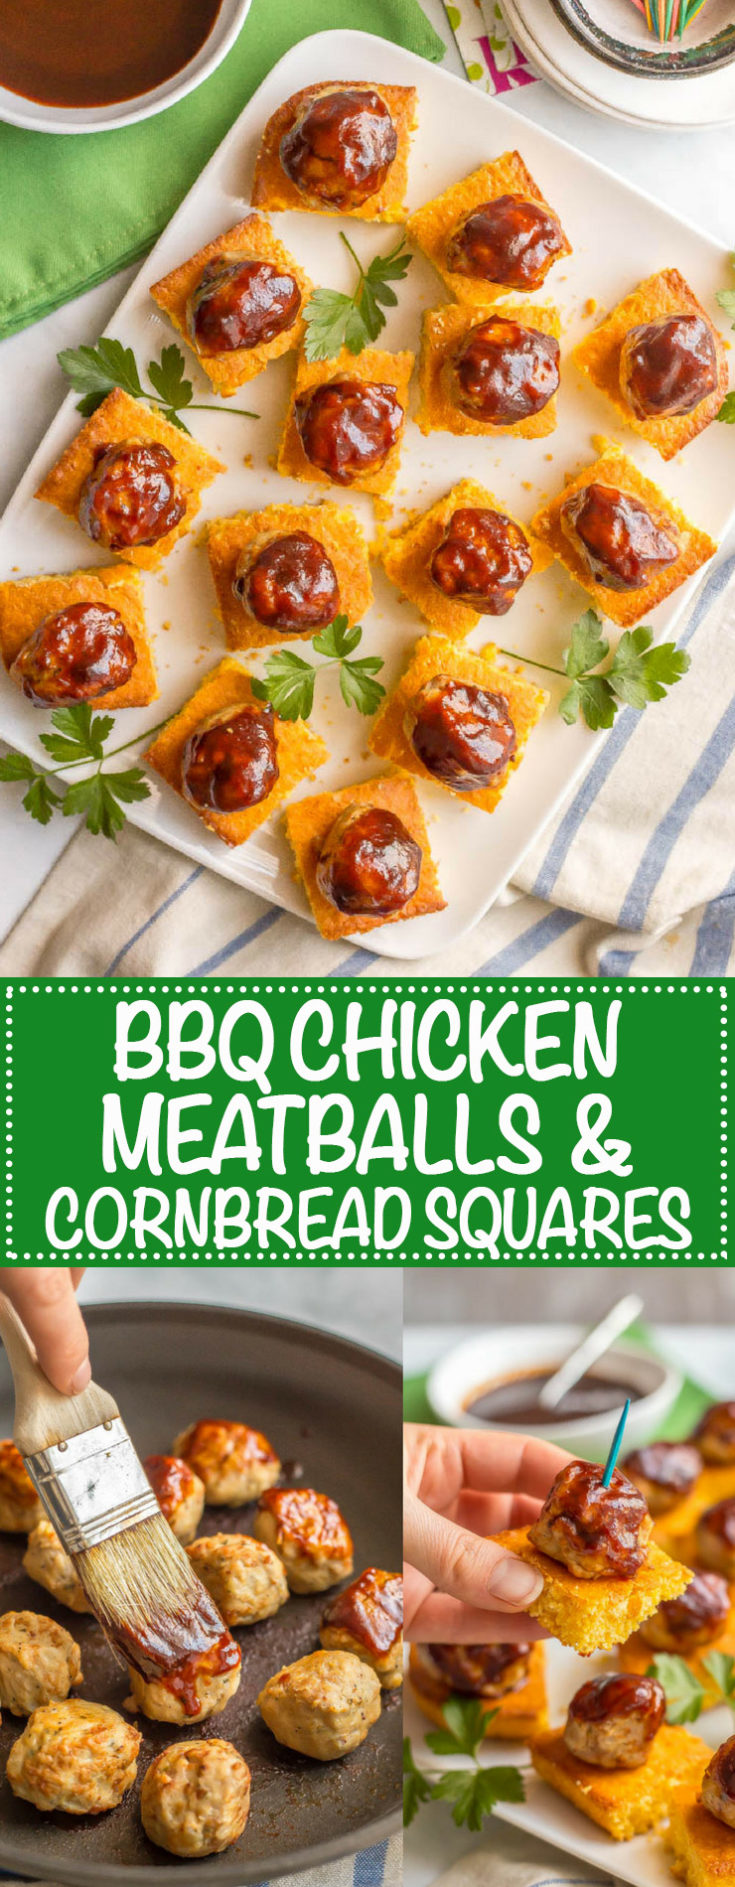 Chicken meatballs and cornbread appetizer with BBQ sauce is a fun, flavorful twist on party food that's perfect for game day and entertaining!